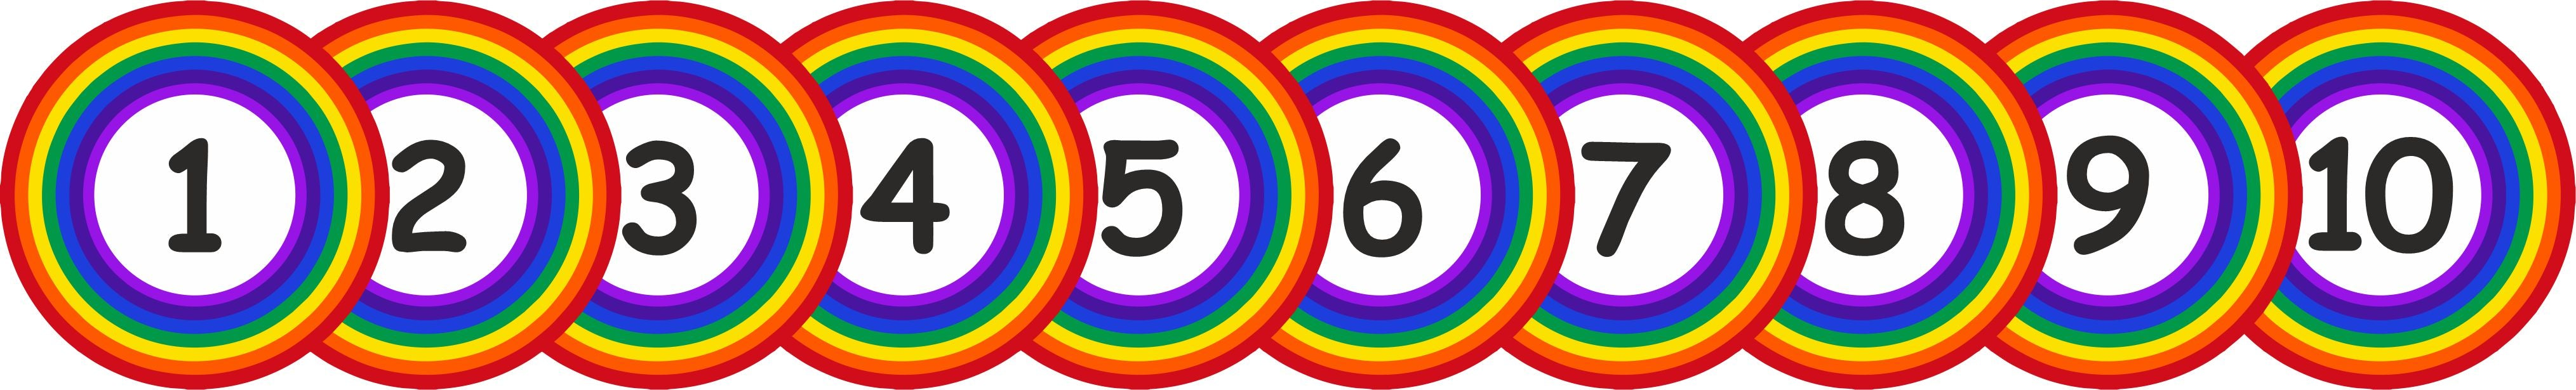 SCHOOL FLOOR STICKERS RAINBOW NUMBERS 1 - 10  - COVID 19 SOCIAL DISTANCING